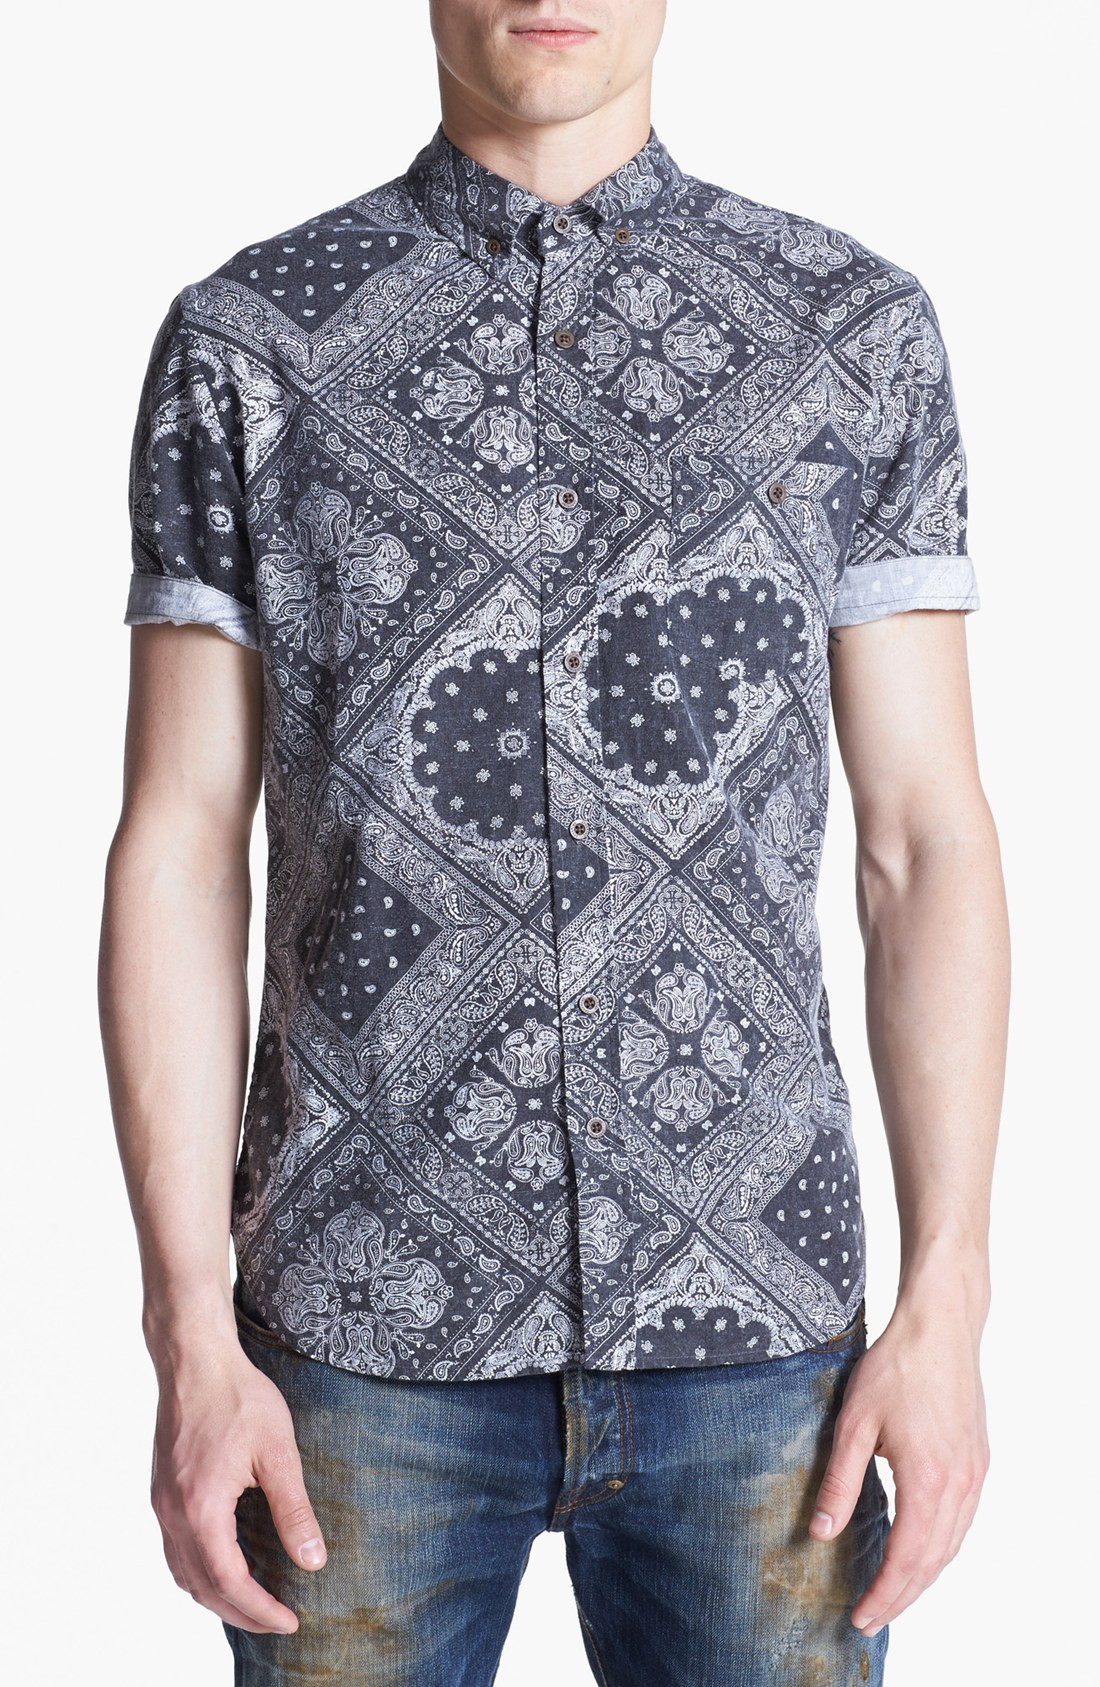 Online shopping for popular & hot Bandana Shirts from Men's Clothing & Accessories, T-Shirts, Hoodies & Sweatshirts, Casual Shirts and more related Bandana Shirts like Bandana Shirts. Discover over of the best Selection Bandana Shirts on nichapie.ml Besides, various selected Bandana Shirts brands are prepared for you to choose.